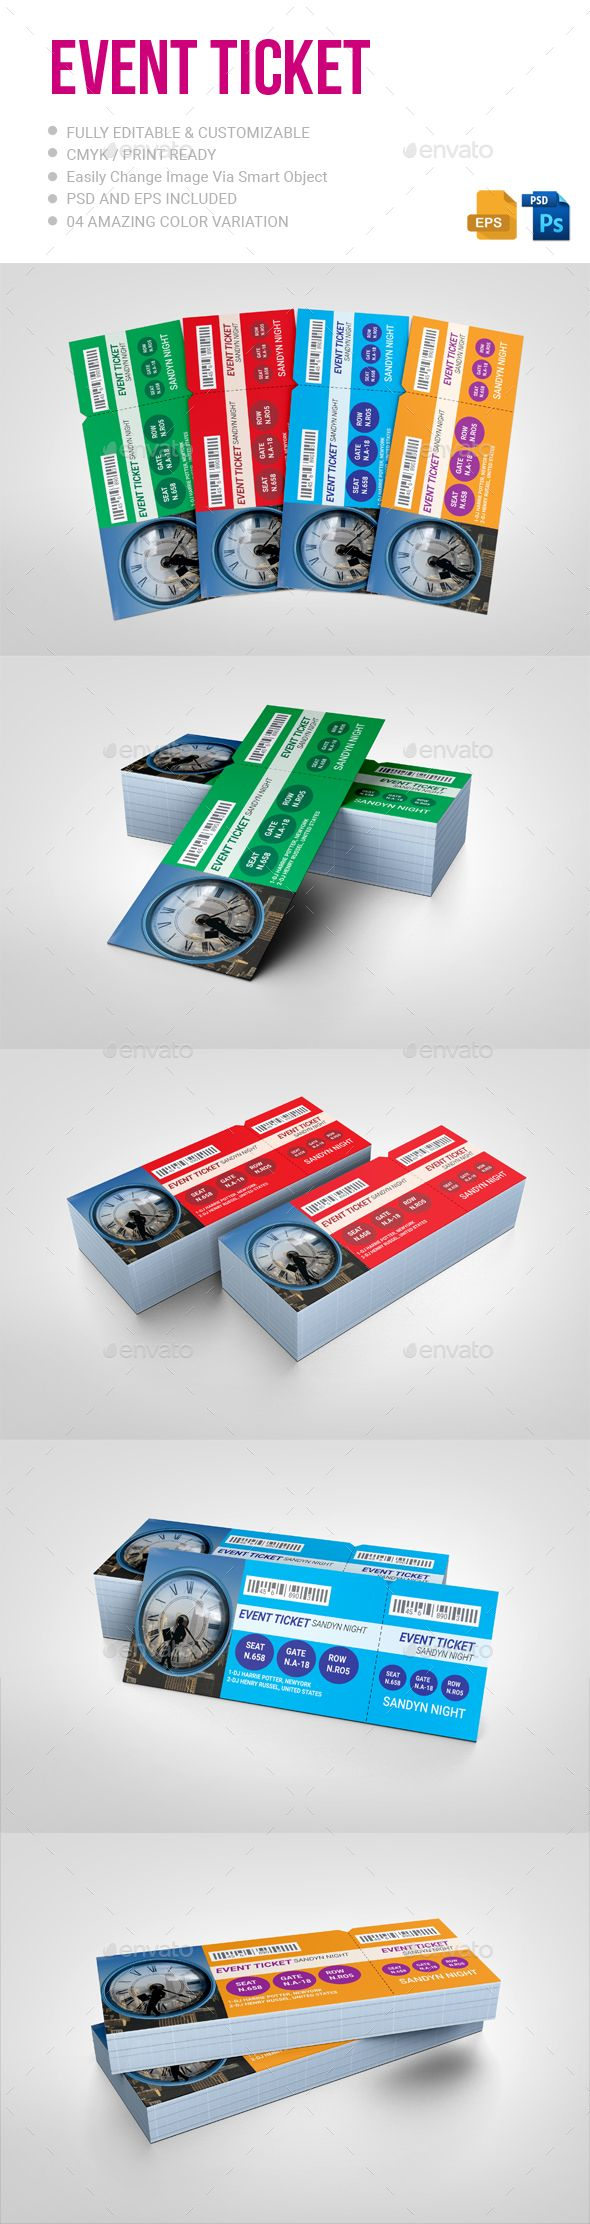 Event Ticket  #event #concert #season • Click here to download ! http://graphicriver.net/item/event-ticket/15780878?ref=pxcr